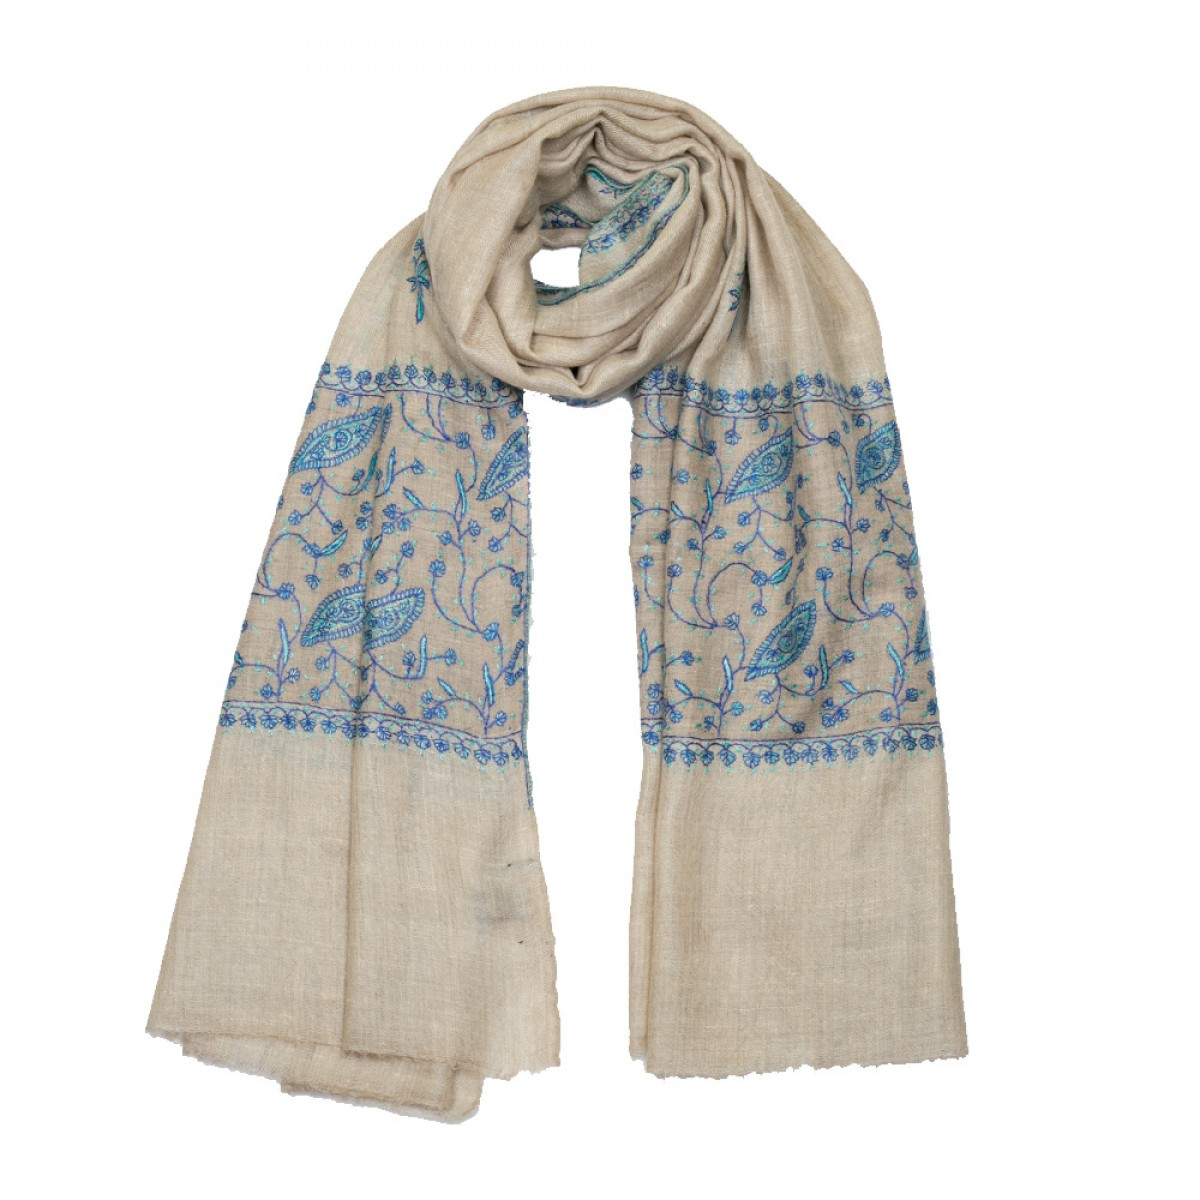 Embroidered Pashmina Stole - Natural & Blue